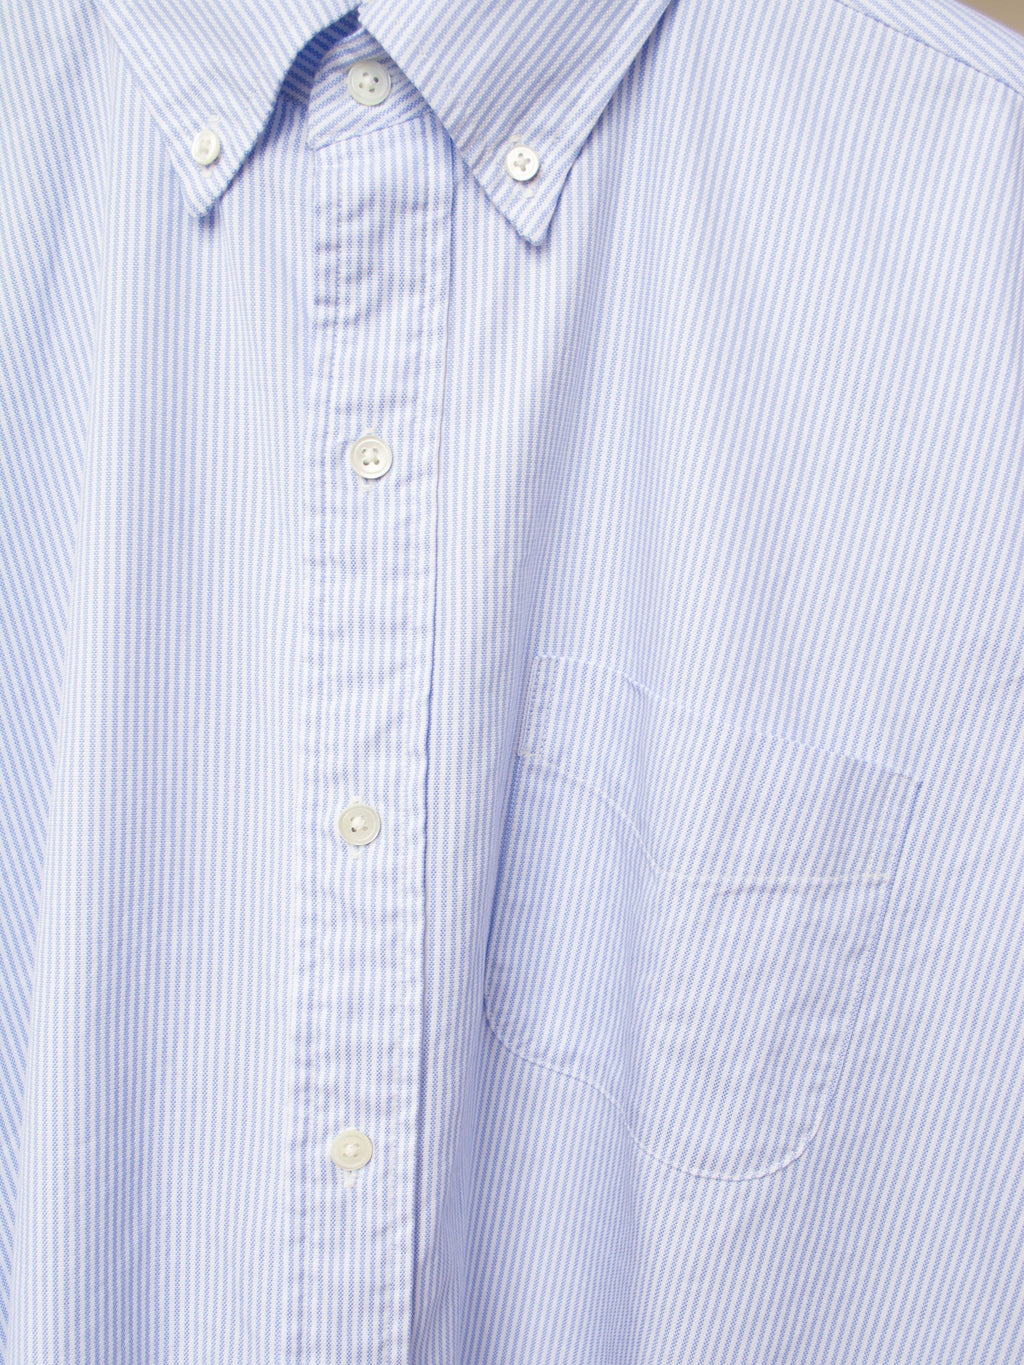 Namu Shop - Kaptain Sunshine Polo Collar Finx Shuttle Oxford Shirt - Blue Candy Stripe